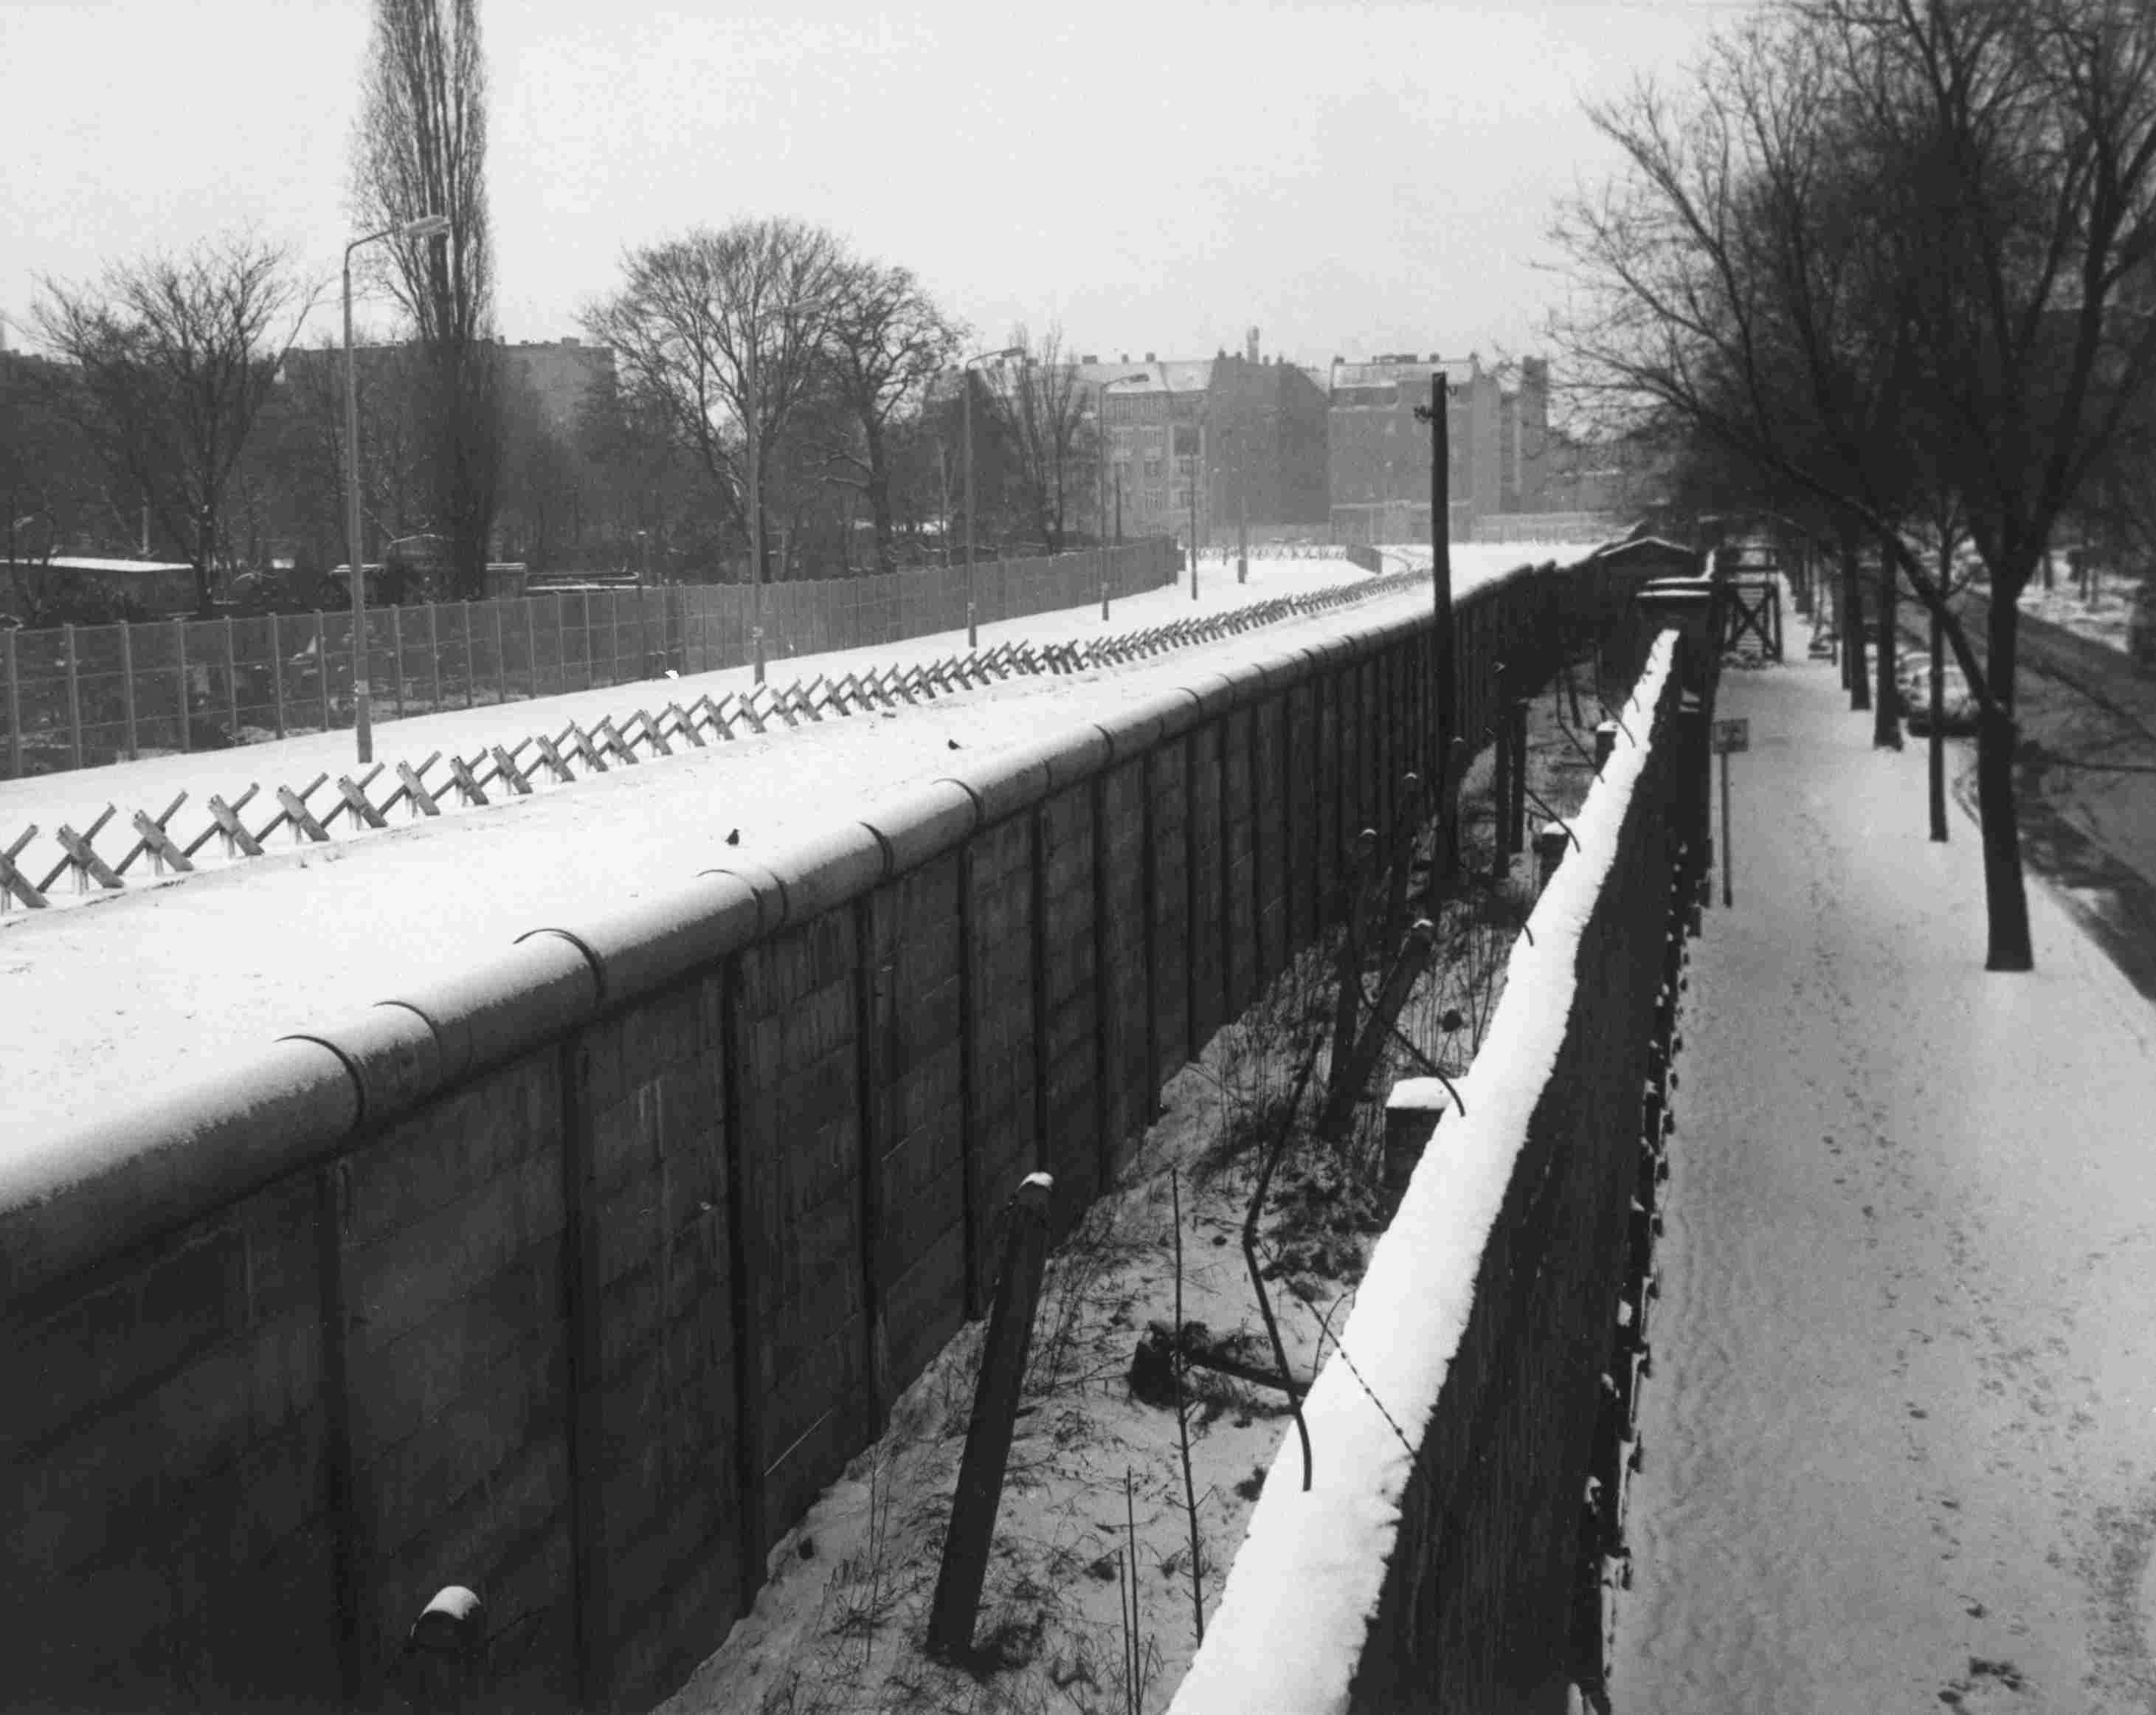 Liebenstrasse View of Berlin Wall with inner wall, trench and barricades.